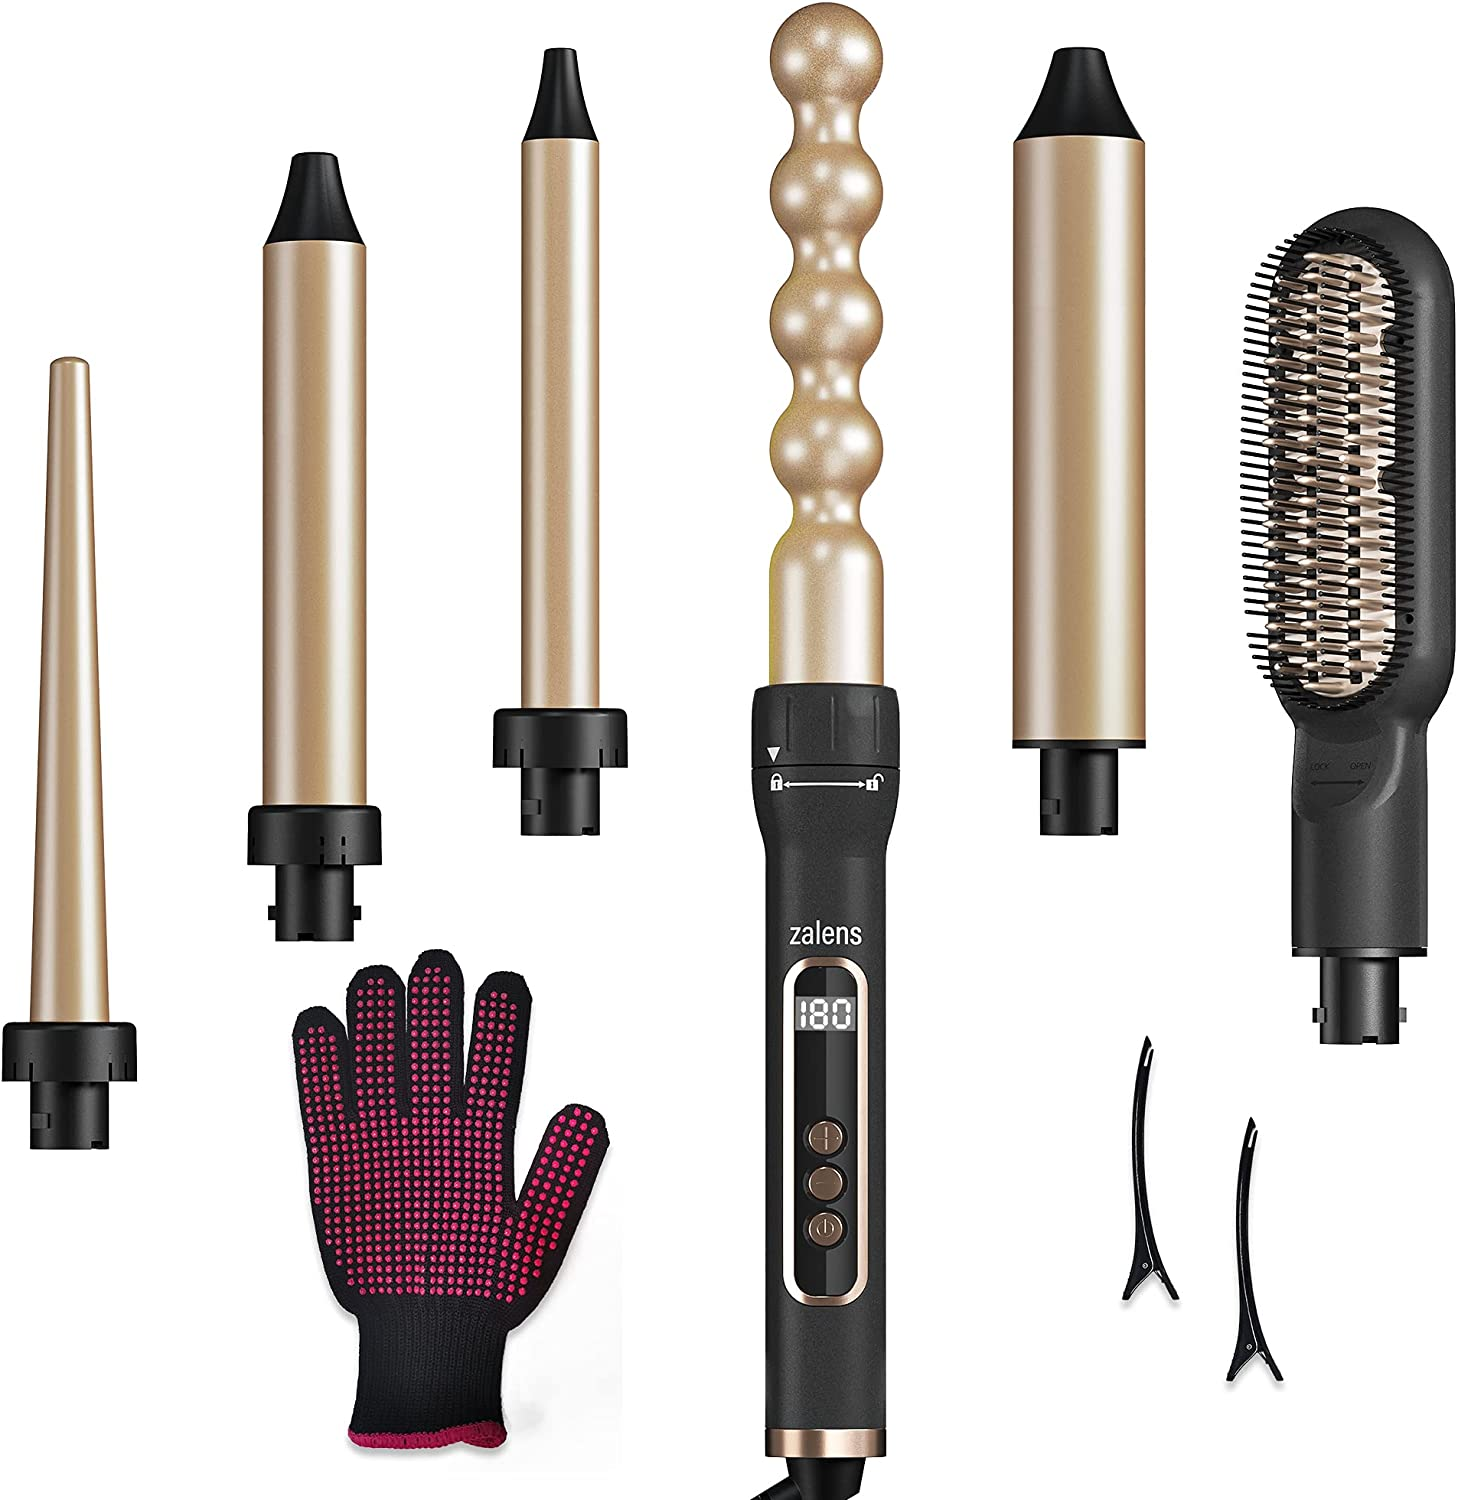 zalens 6 in 1 Curling Max 82% OFF Iron with Wand Strai Hair Today's only Set